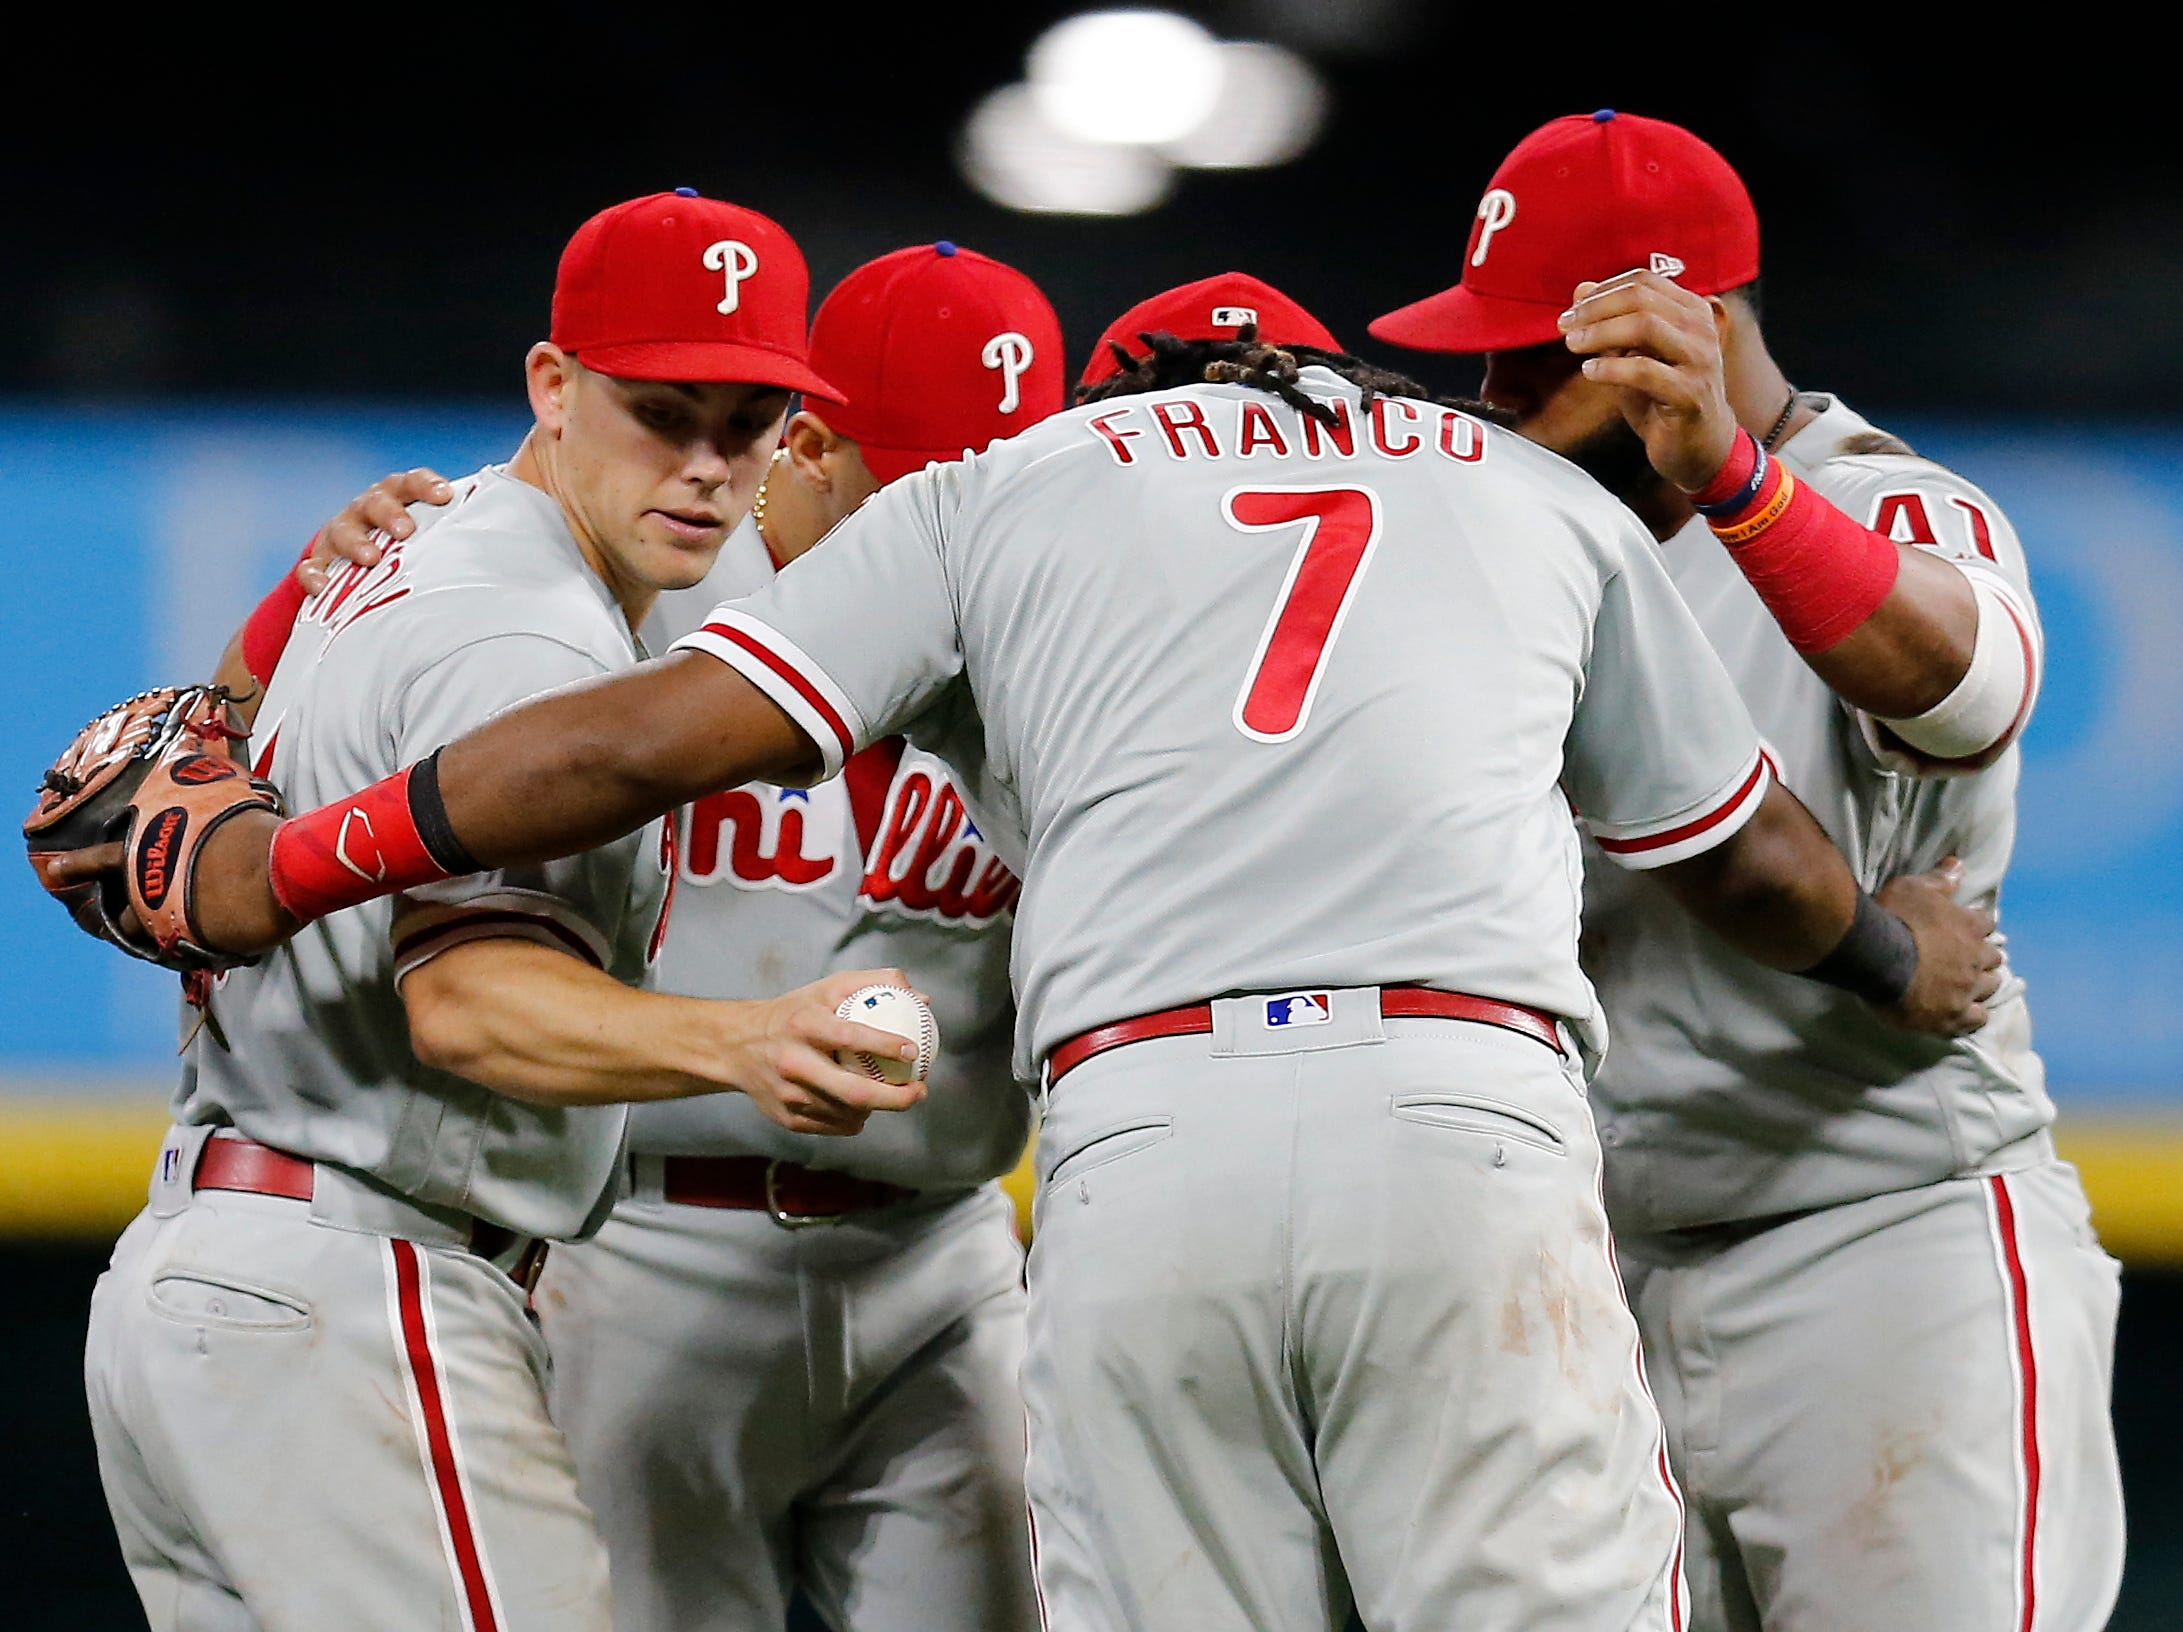 The Philadelphia Phillies celebrate a win after the ninth inning of the MLB National League game between the Cincinnati Reds and the Philadelphia Phillies at Great American Ball Park in downtown Cincinnati on Thursday, July 26, 2018. The Reds lost 9-4.